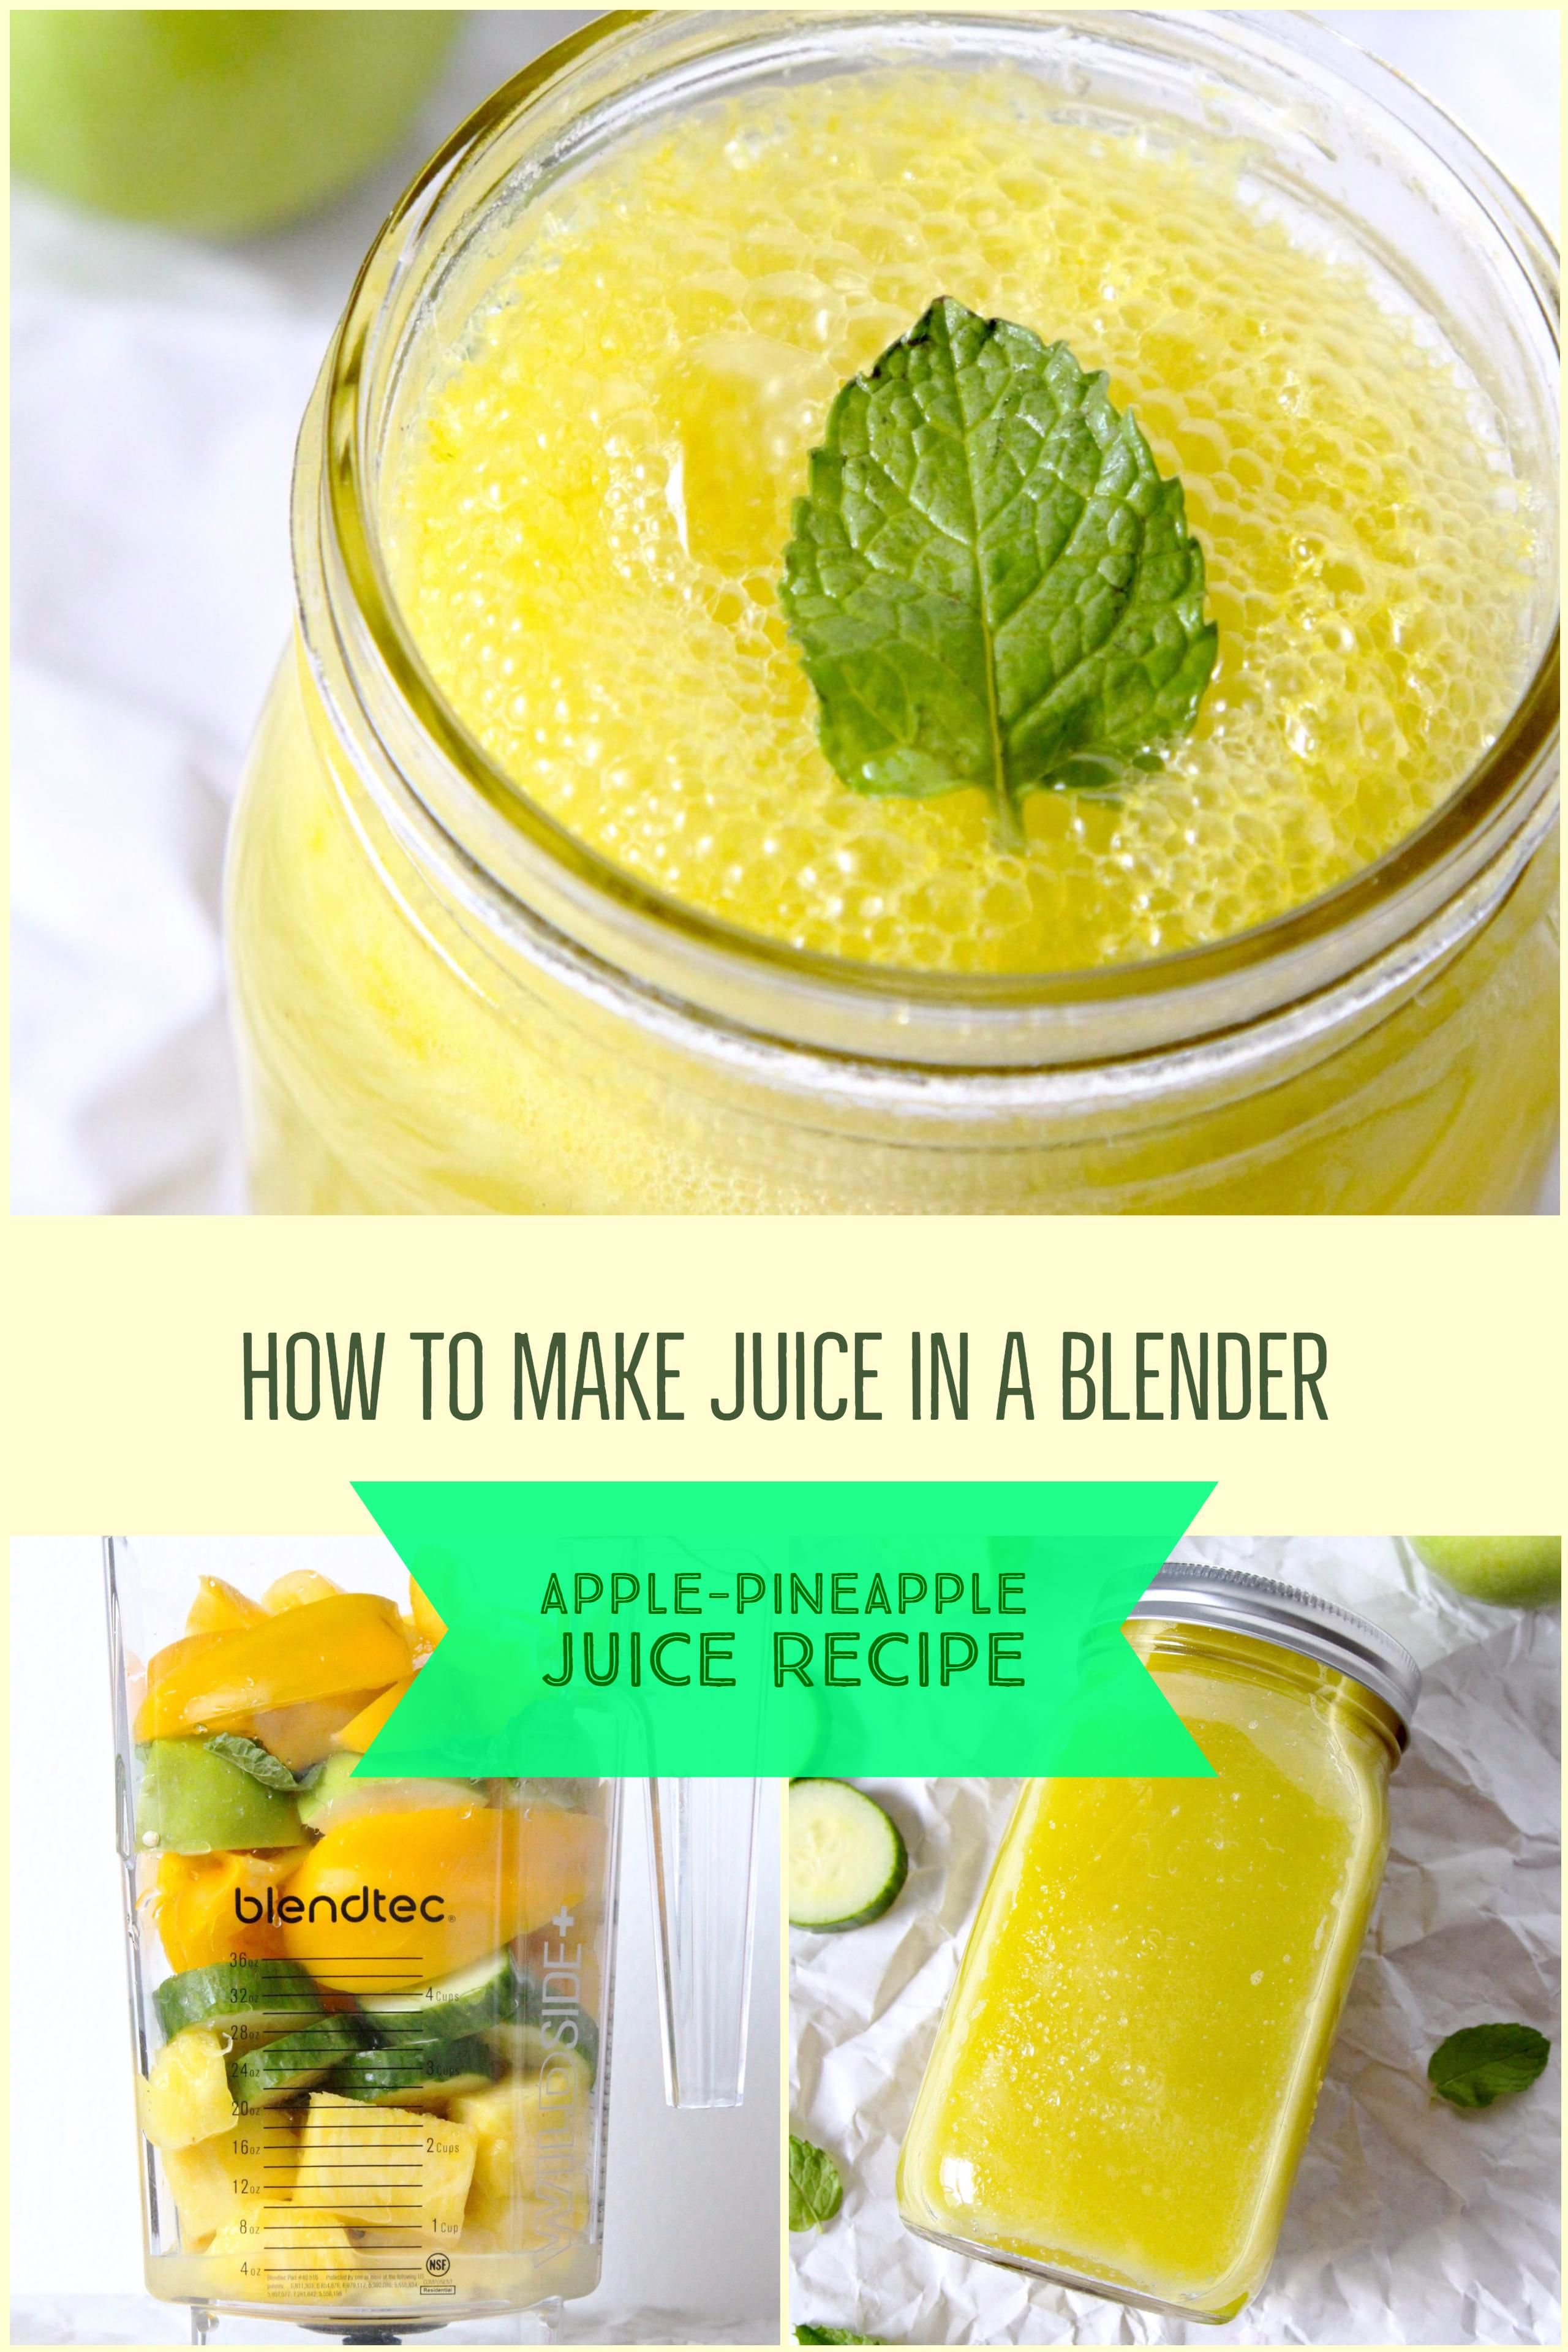 How To Make Apple Pineapple Juice In A Blender Vitacost Blog Pineapple Juice Recipes Juicing Recipes Fresh Juice Recipes